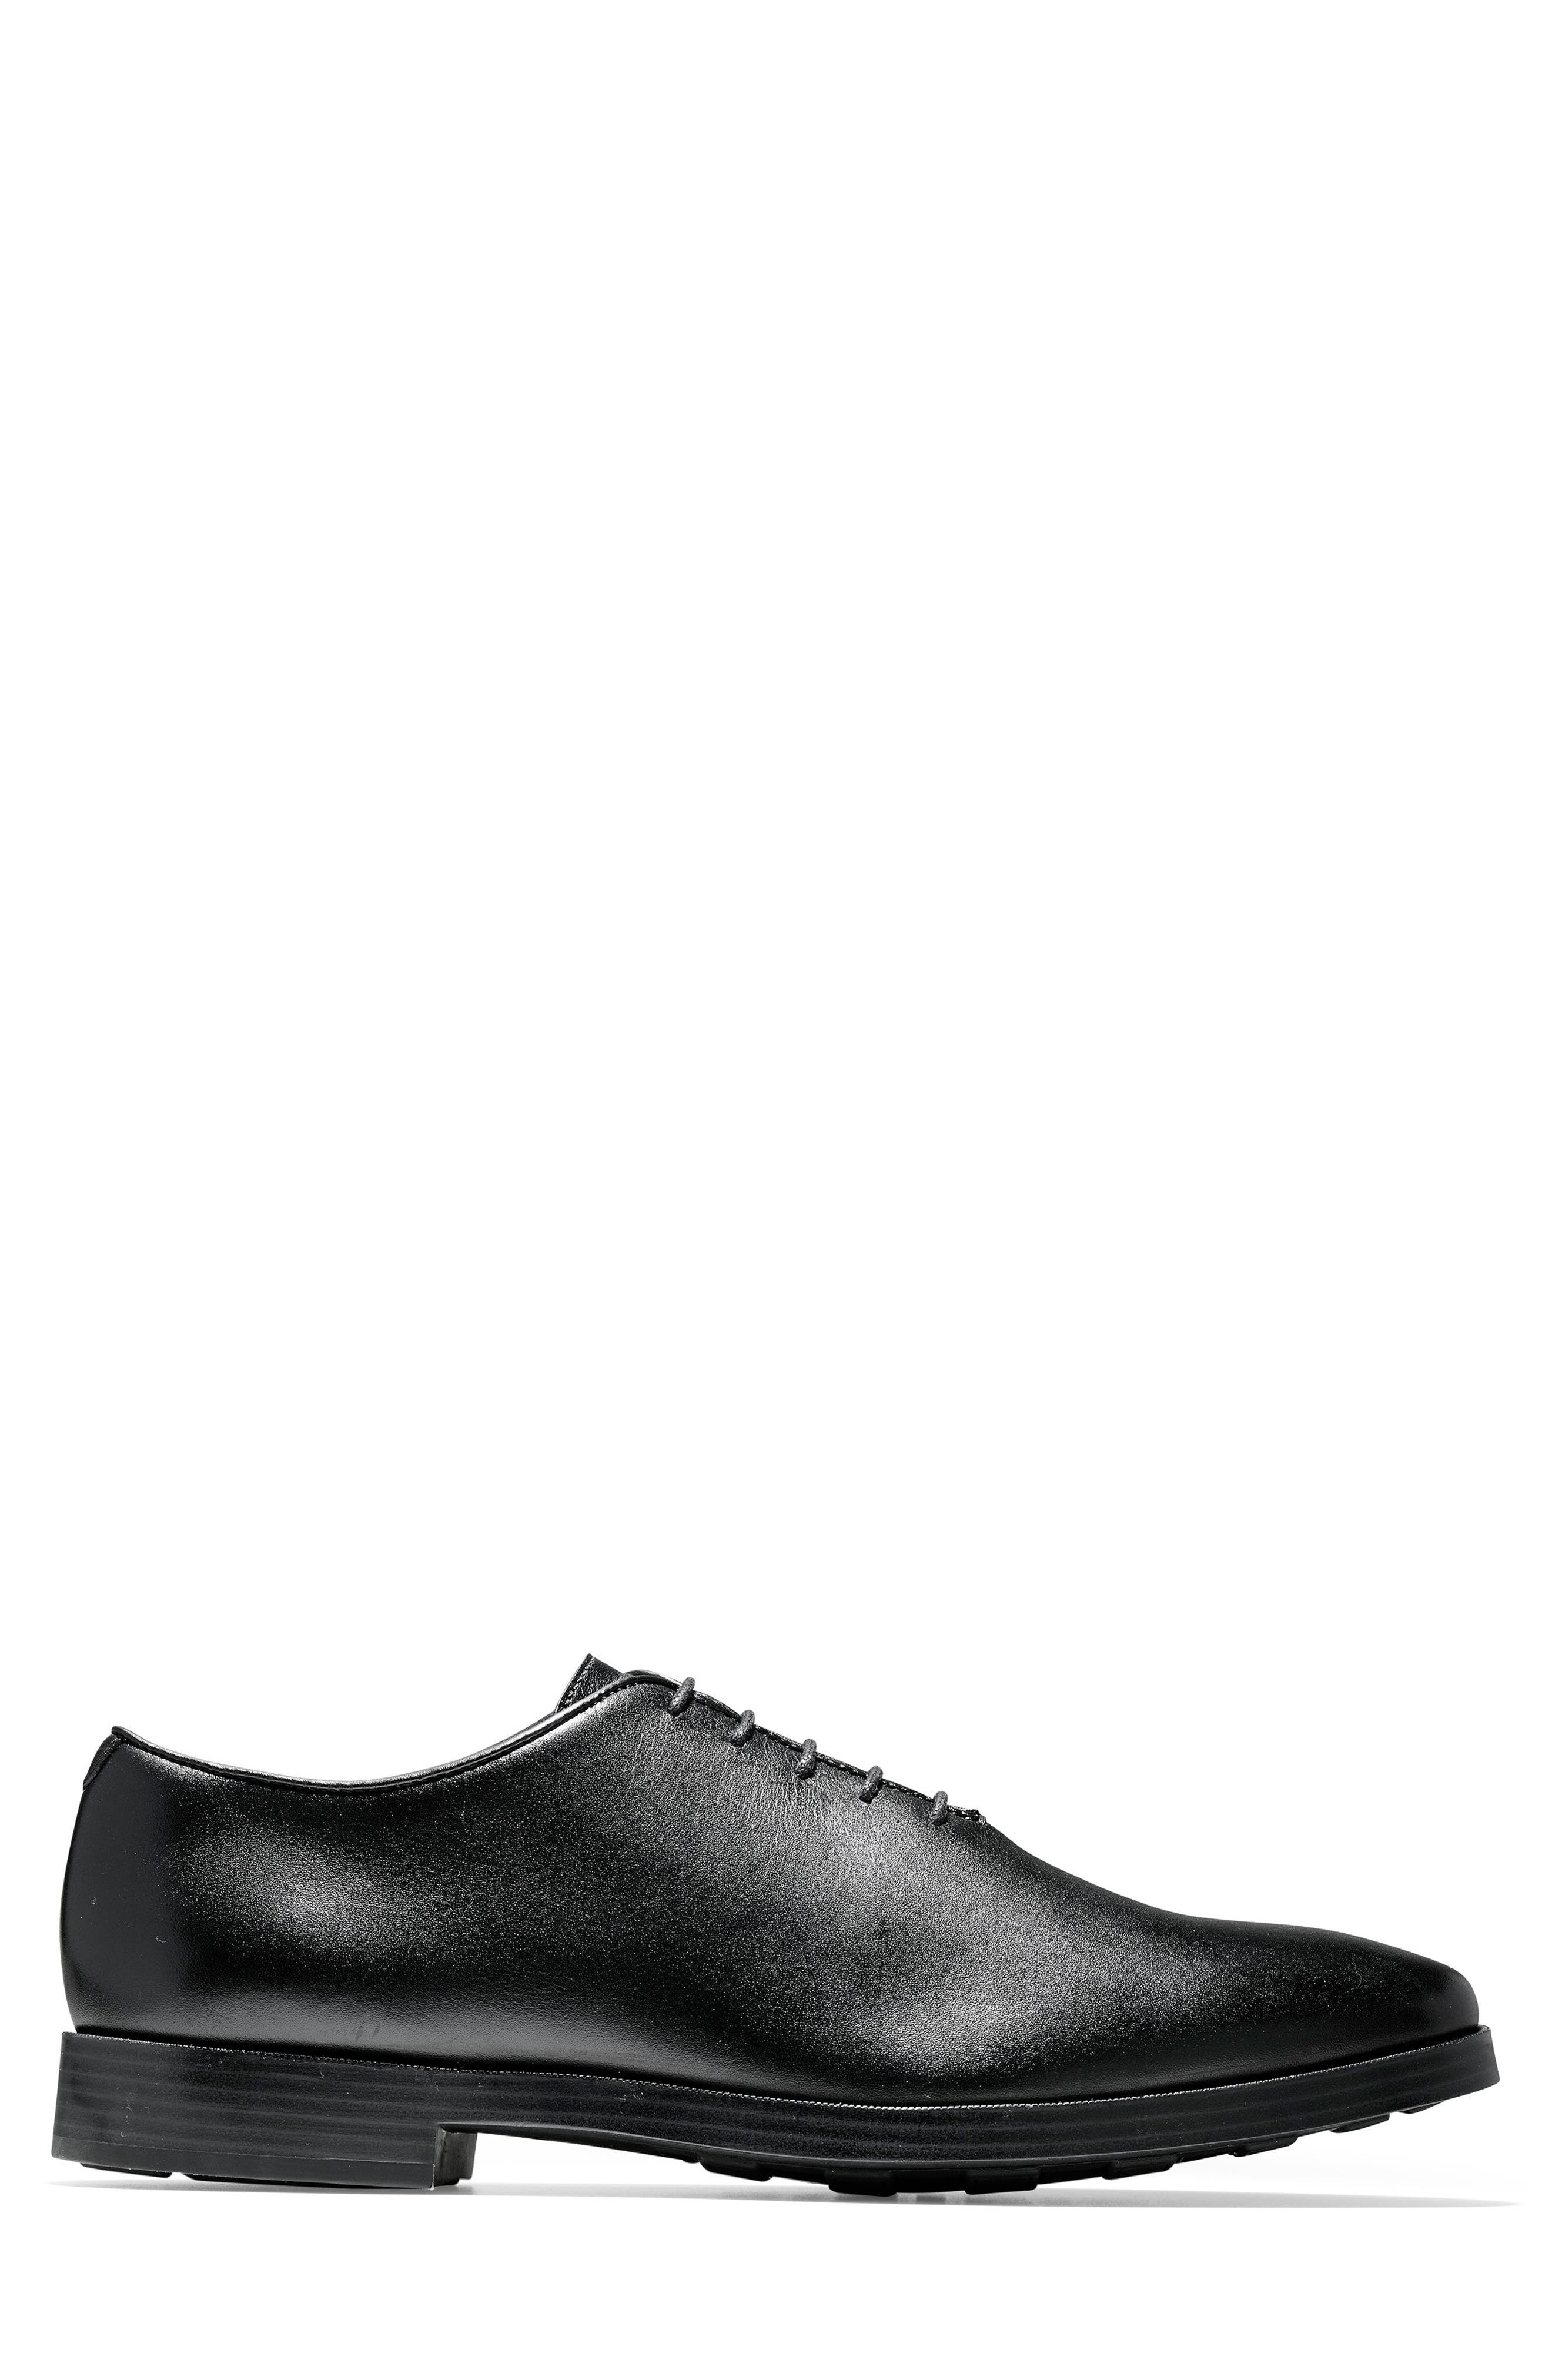 Jefferson Waterproof Wholecut Oxford,                             Alternate thumbnail 3, color,                             BLACK LEATHER